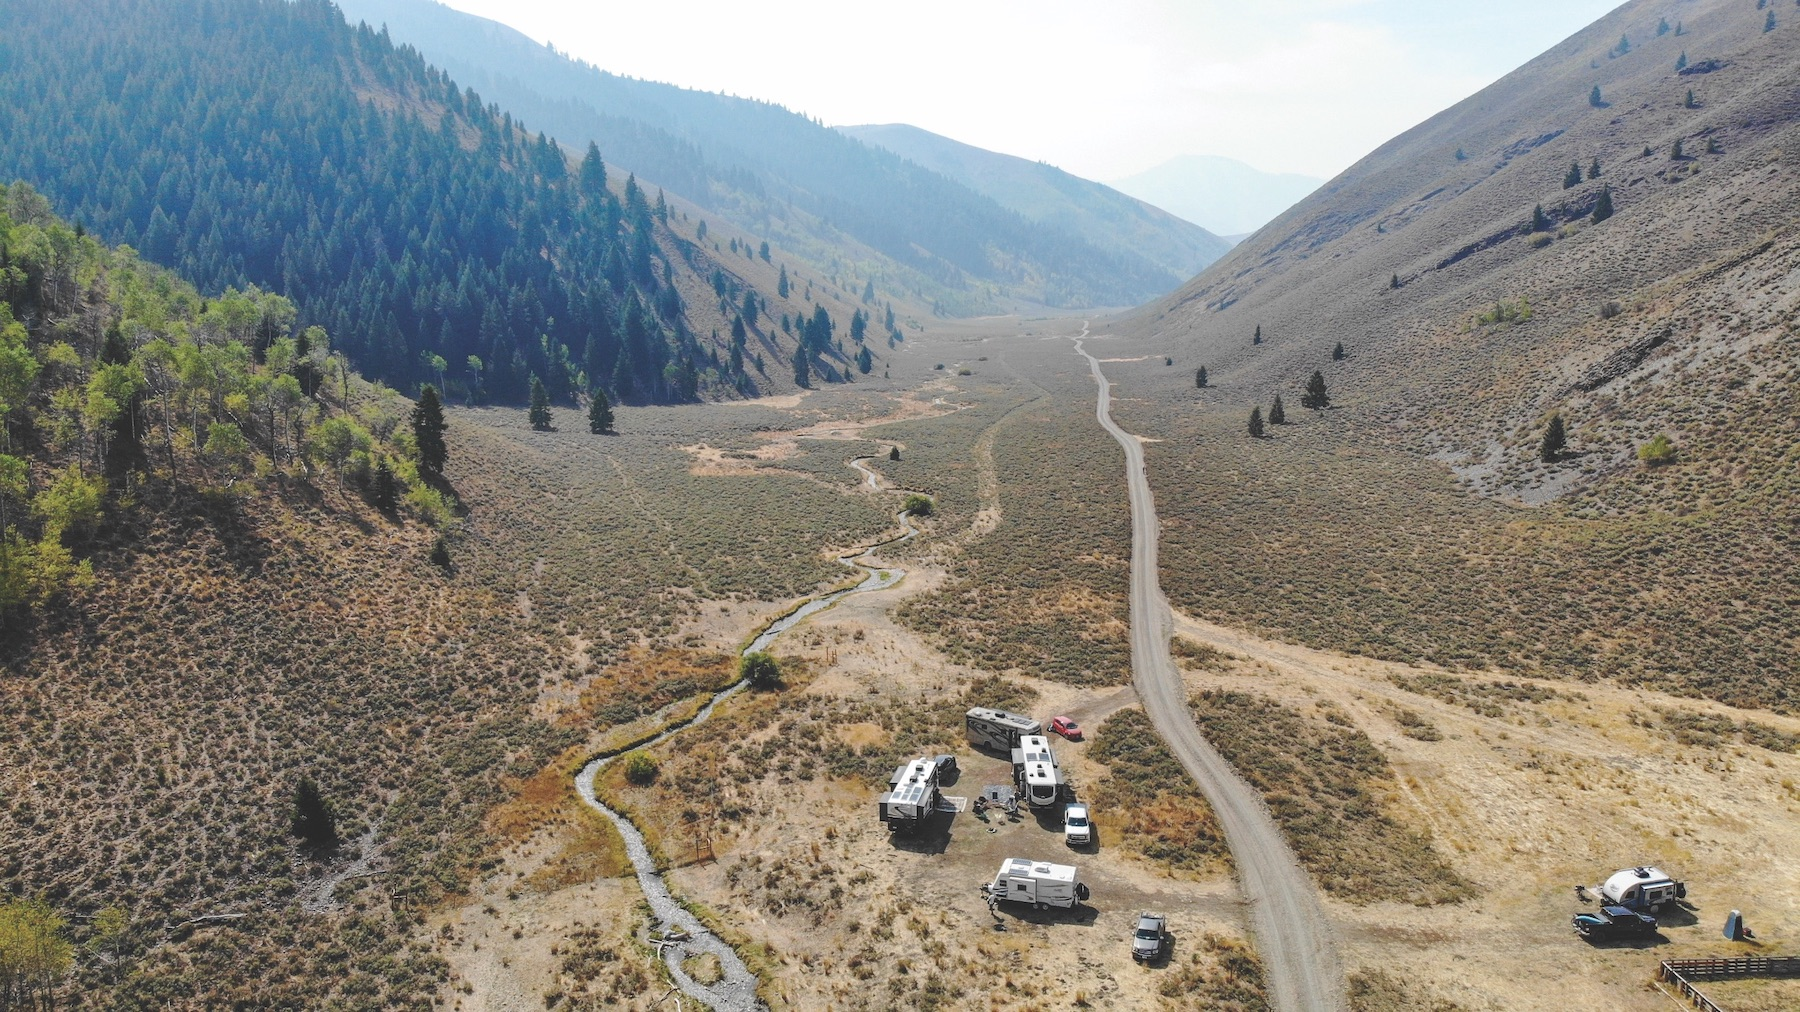 Aerial shot of Boondocking on BLM land.